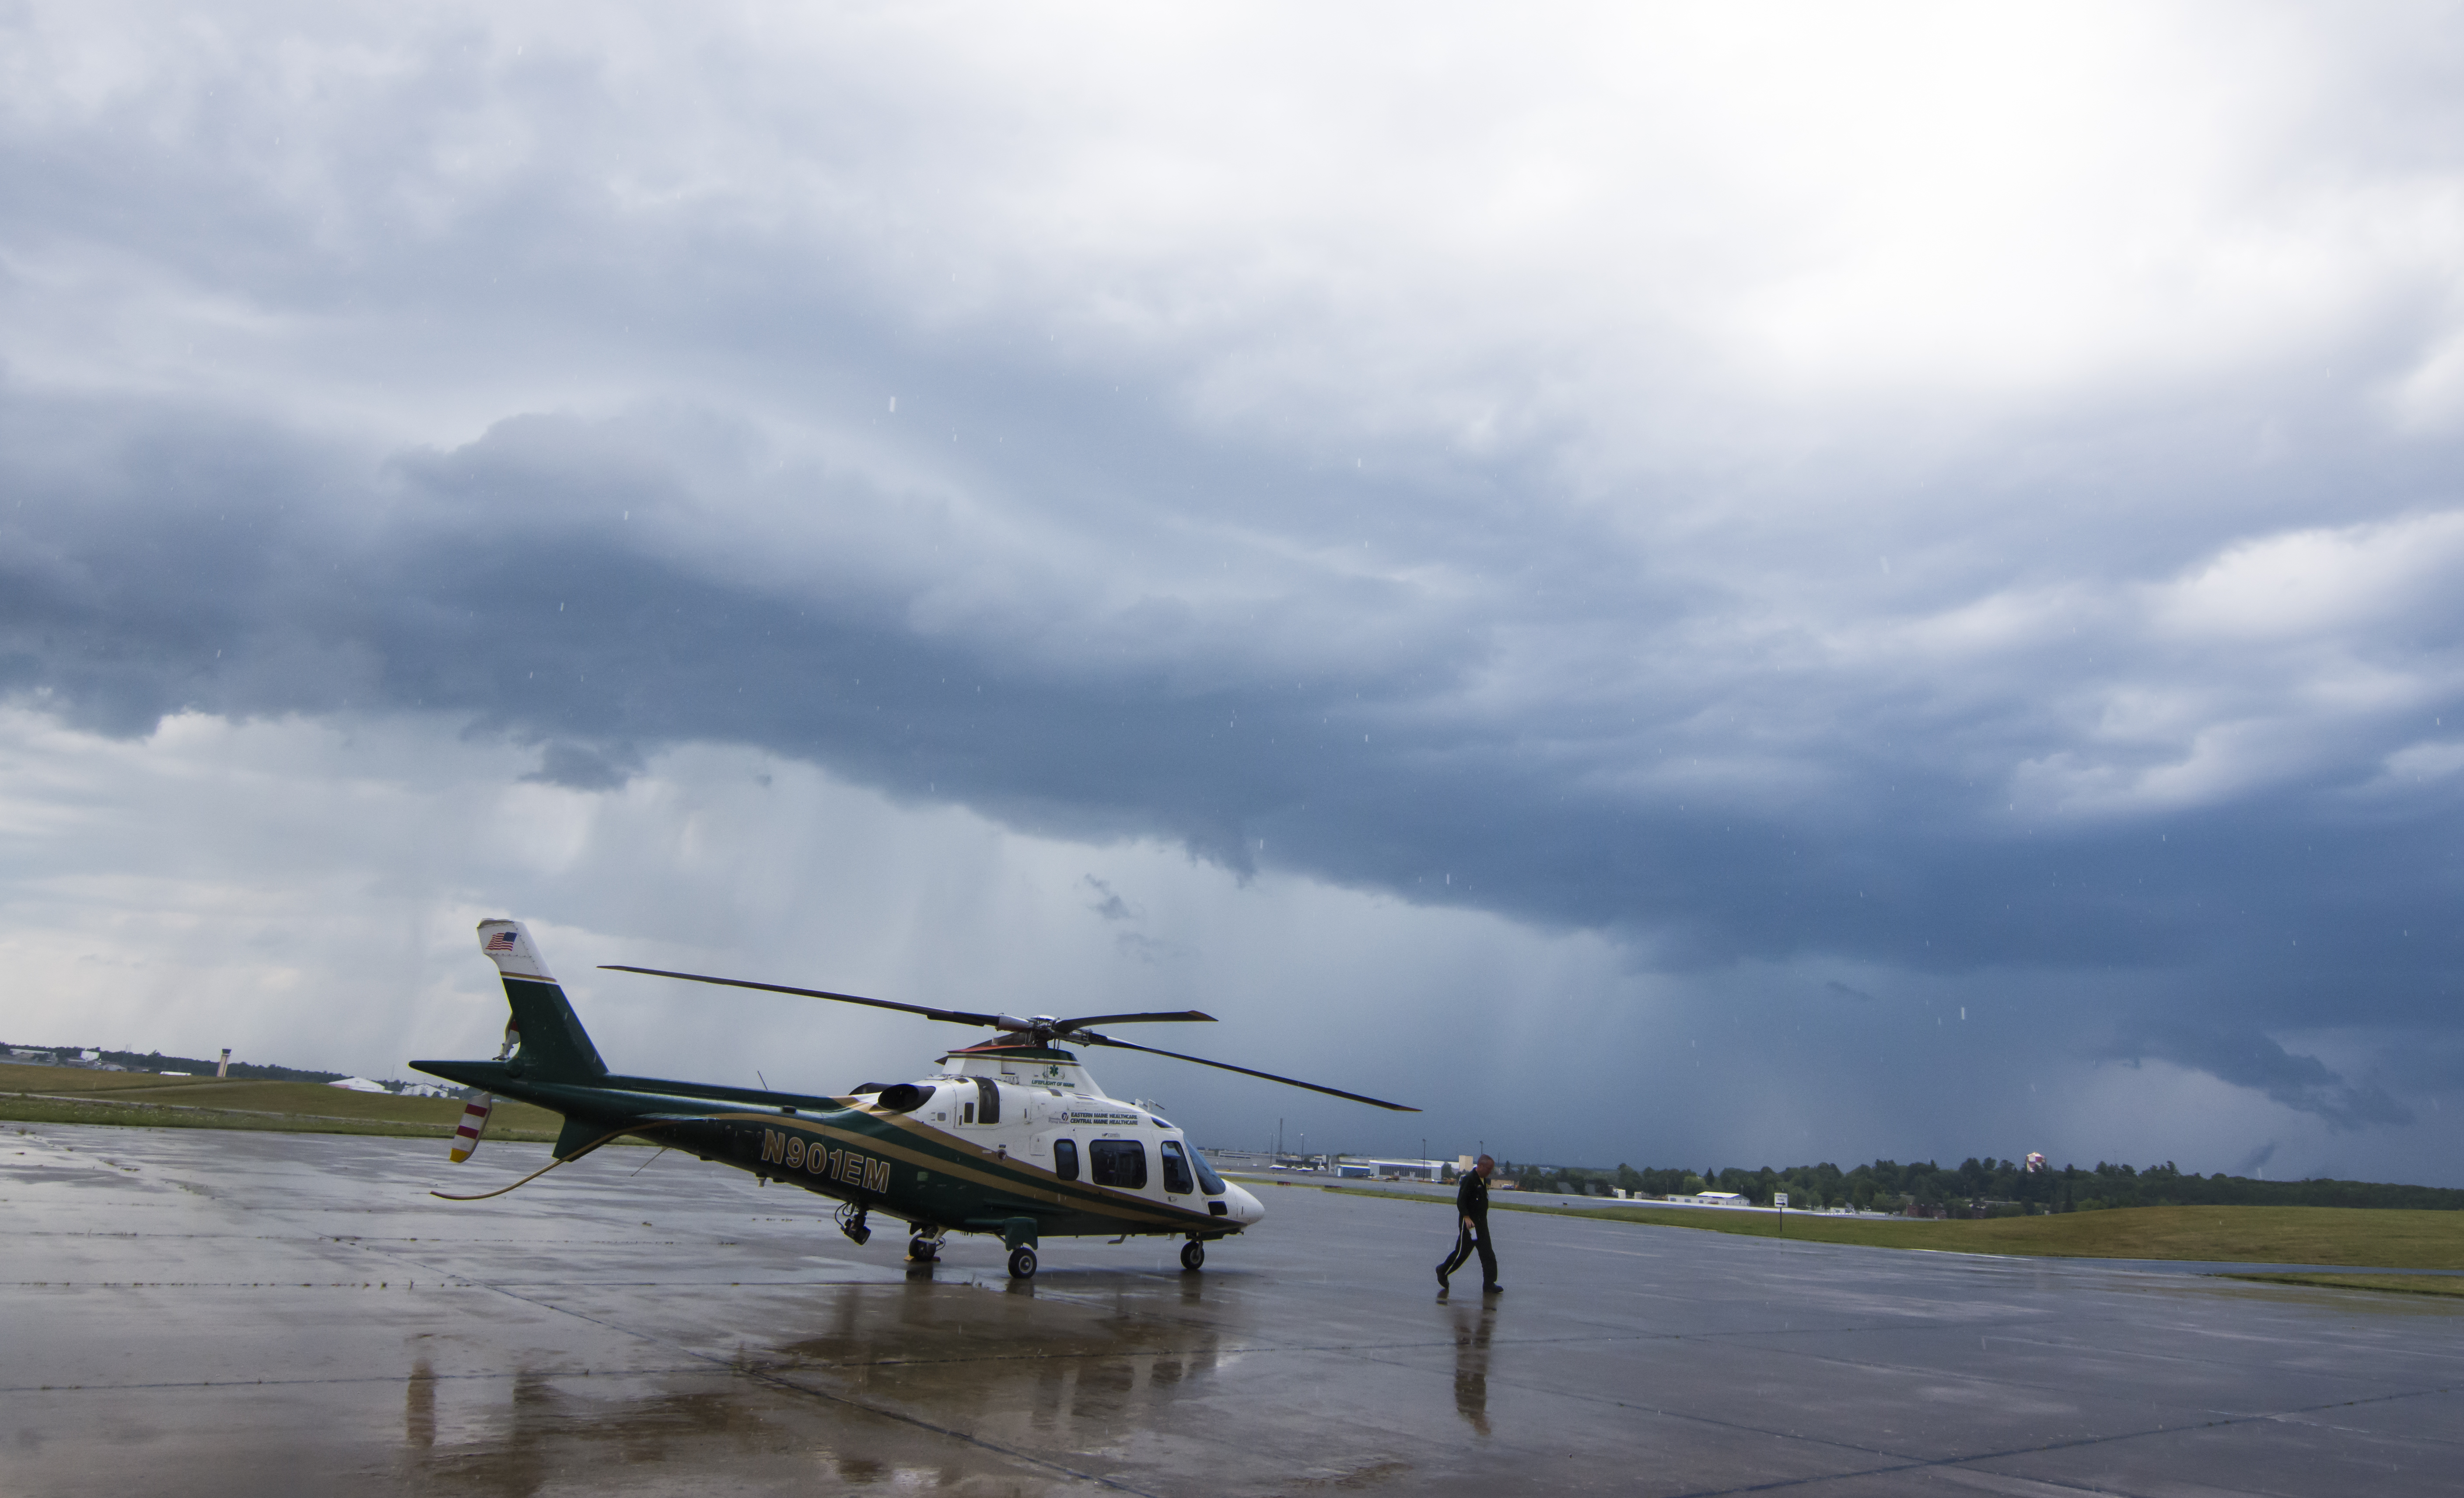 Just in time, helicopter before rain